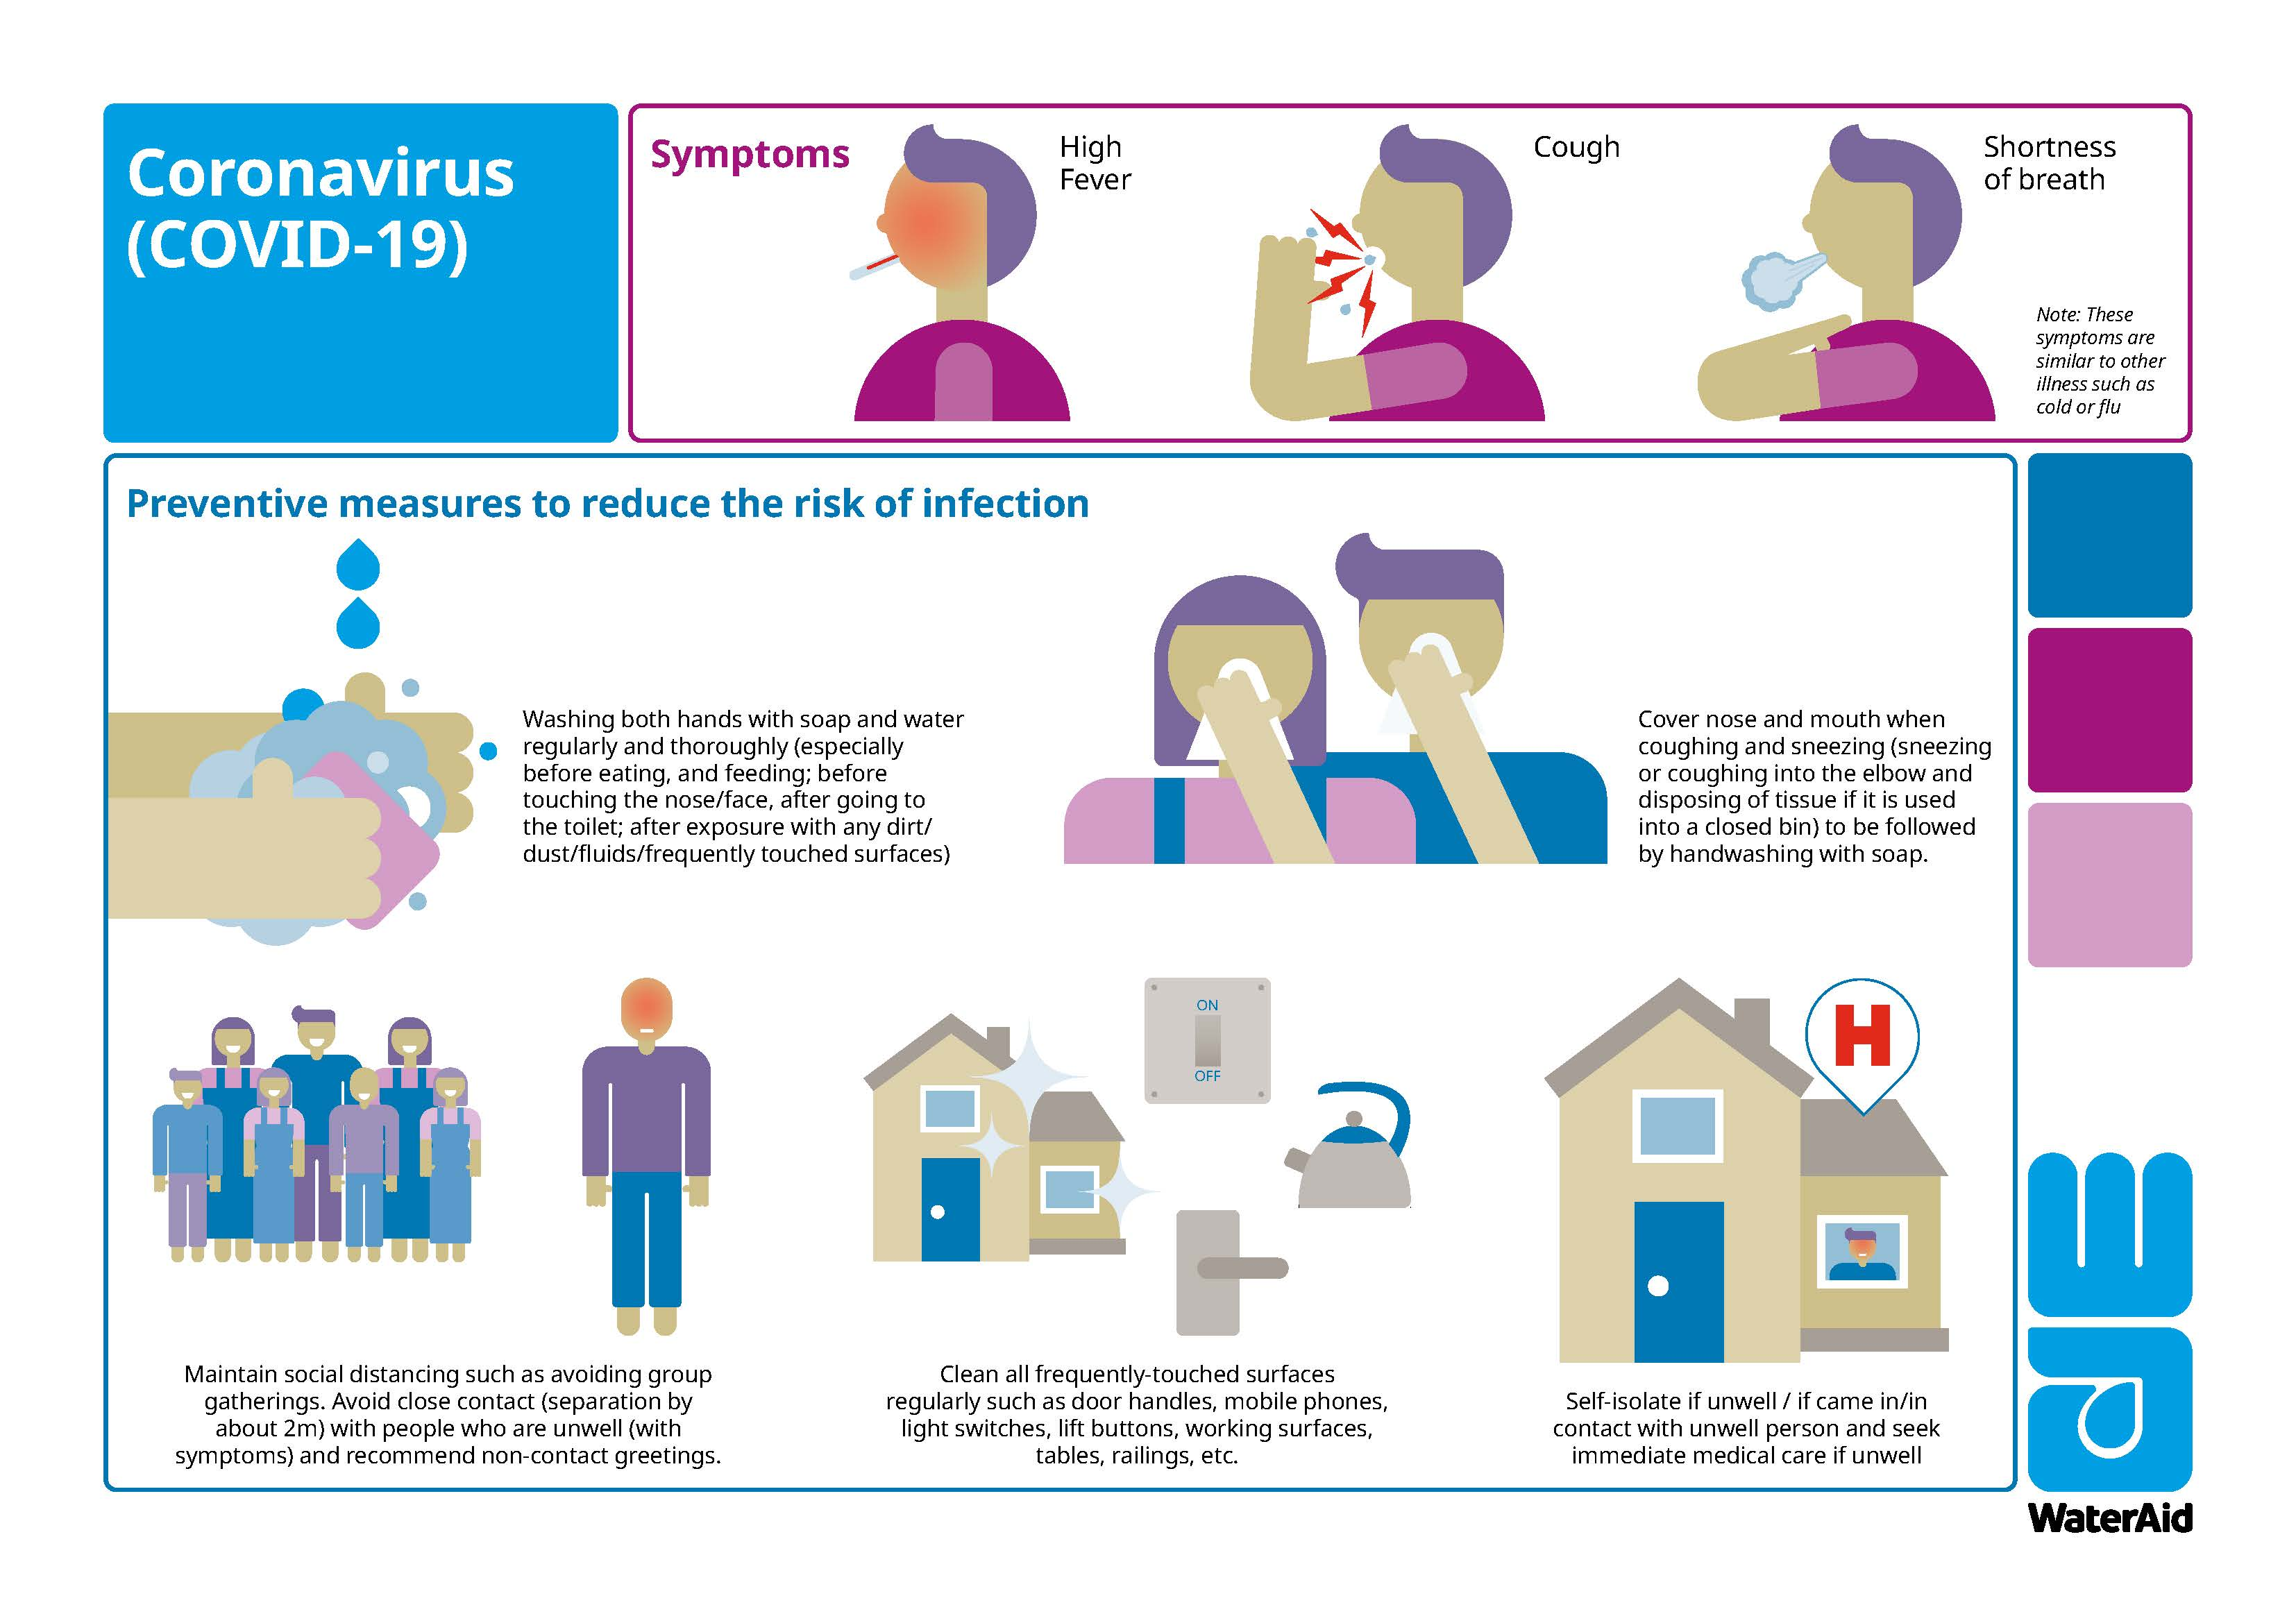 A poster showing six behaviours key to preventing spread of coronavirus: washing hands with soap & water regularly & before eating, cooking, feeding or touching the face & after using the toilet or touching anything dirty or potentially contaminated; covering nose & mouth when coughing or sneezing; avoiding close contact with anyone who is unwell or confirmed cases; clean all highly touched surfaces daily; self-isolate & seek medical care if unwell.